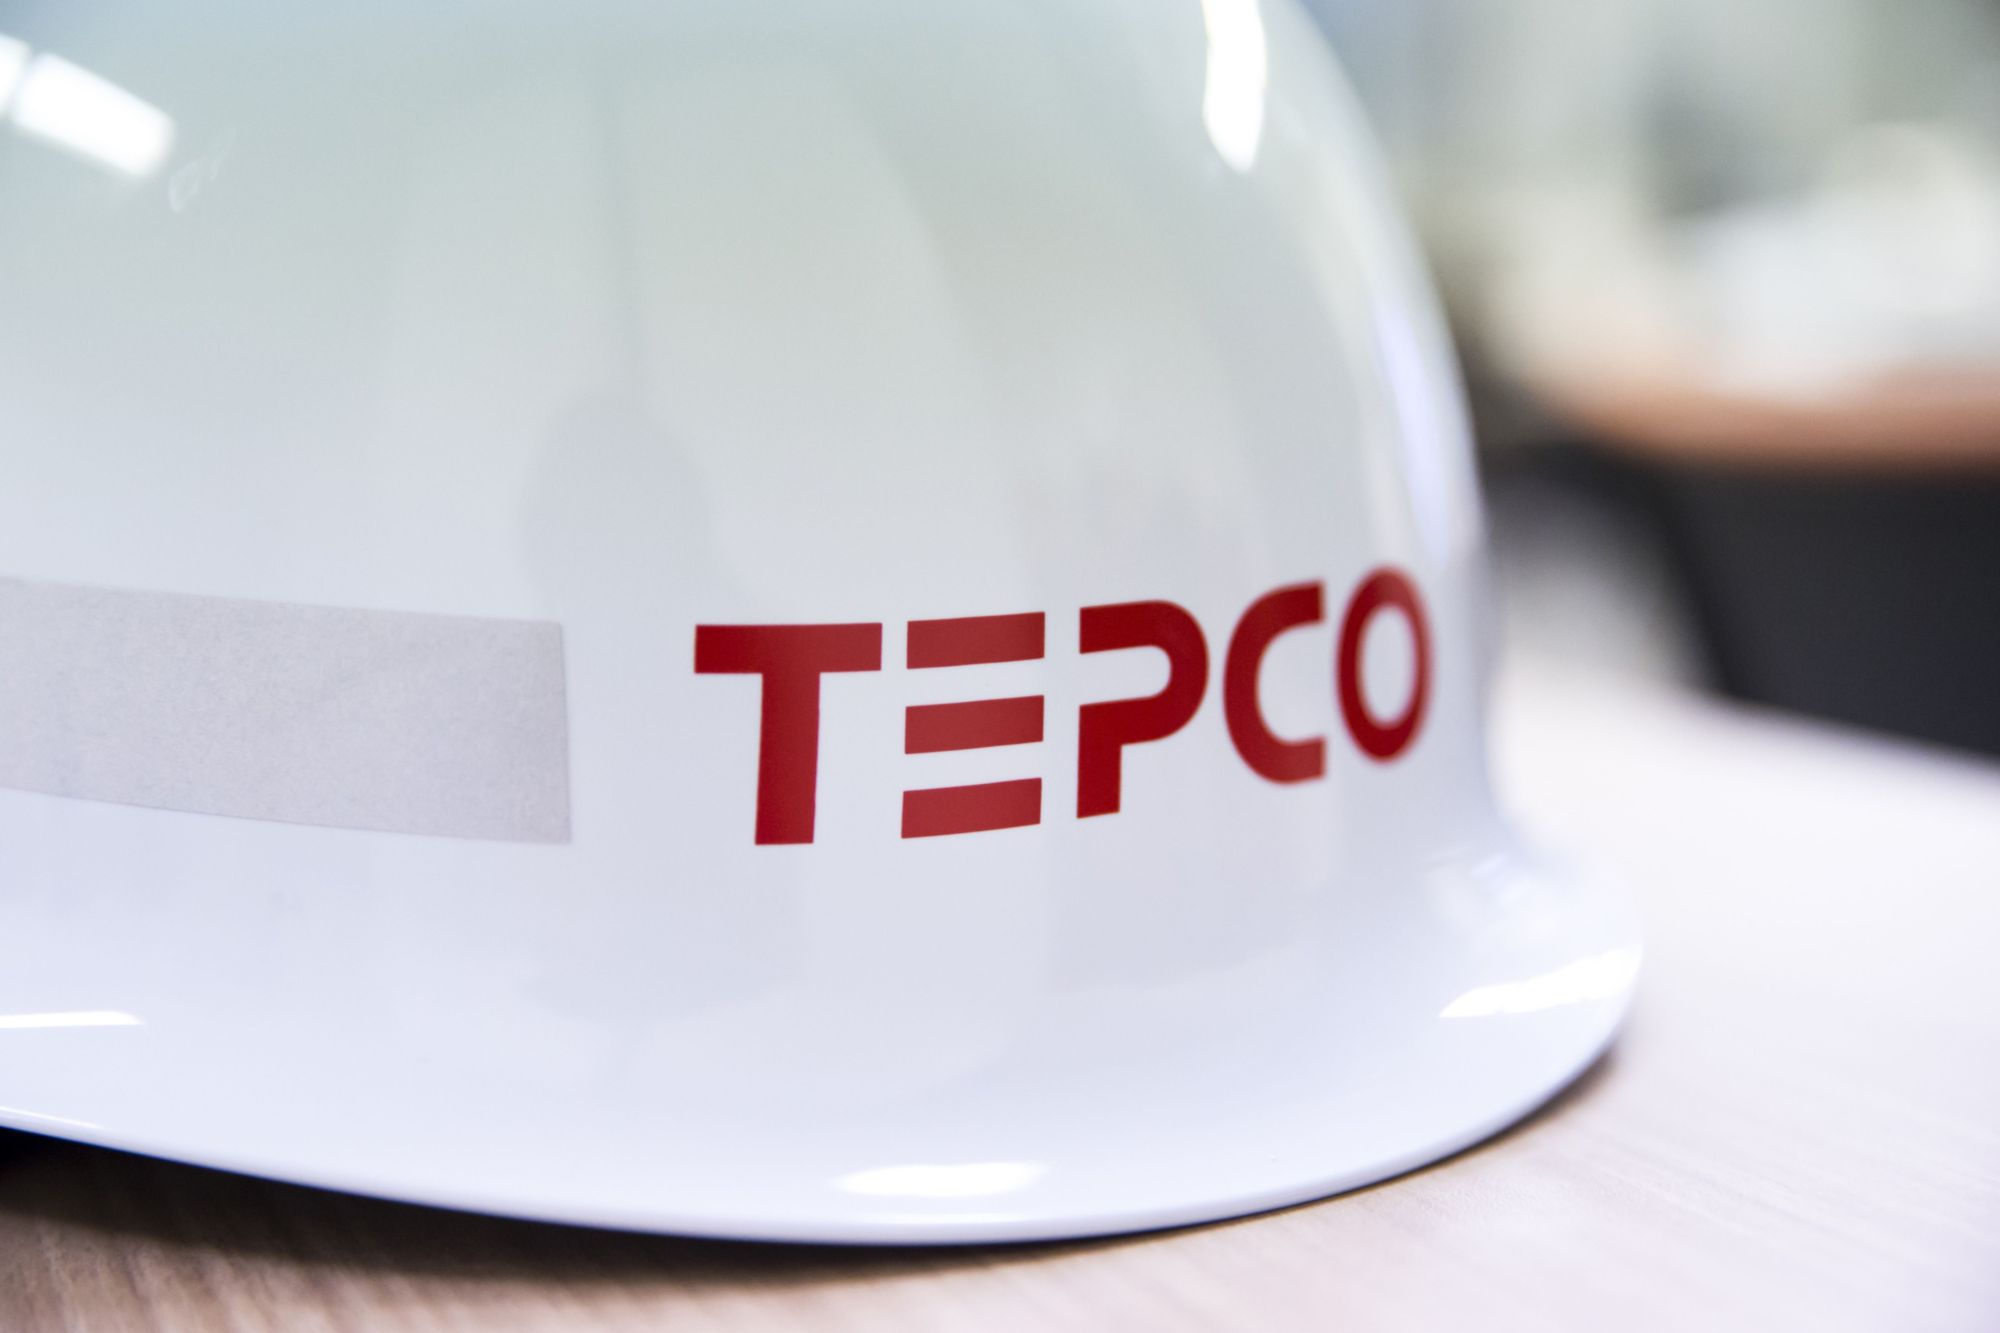 Tepco created a new unit, Tepco Renewable Power Inc., this month to focus on renewable energy. | BLOOMBERG